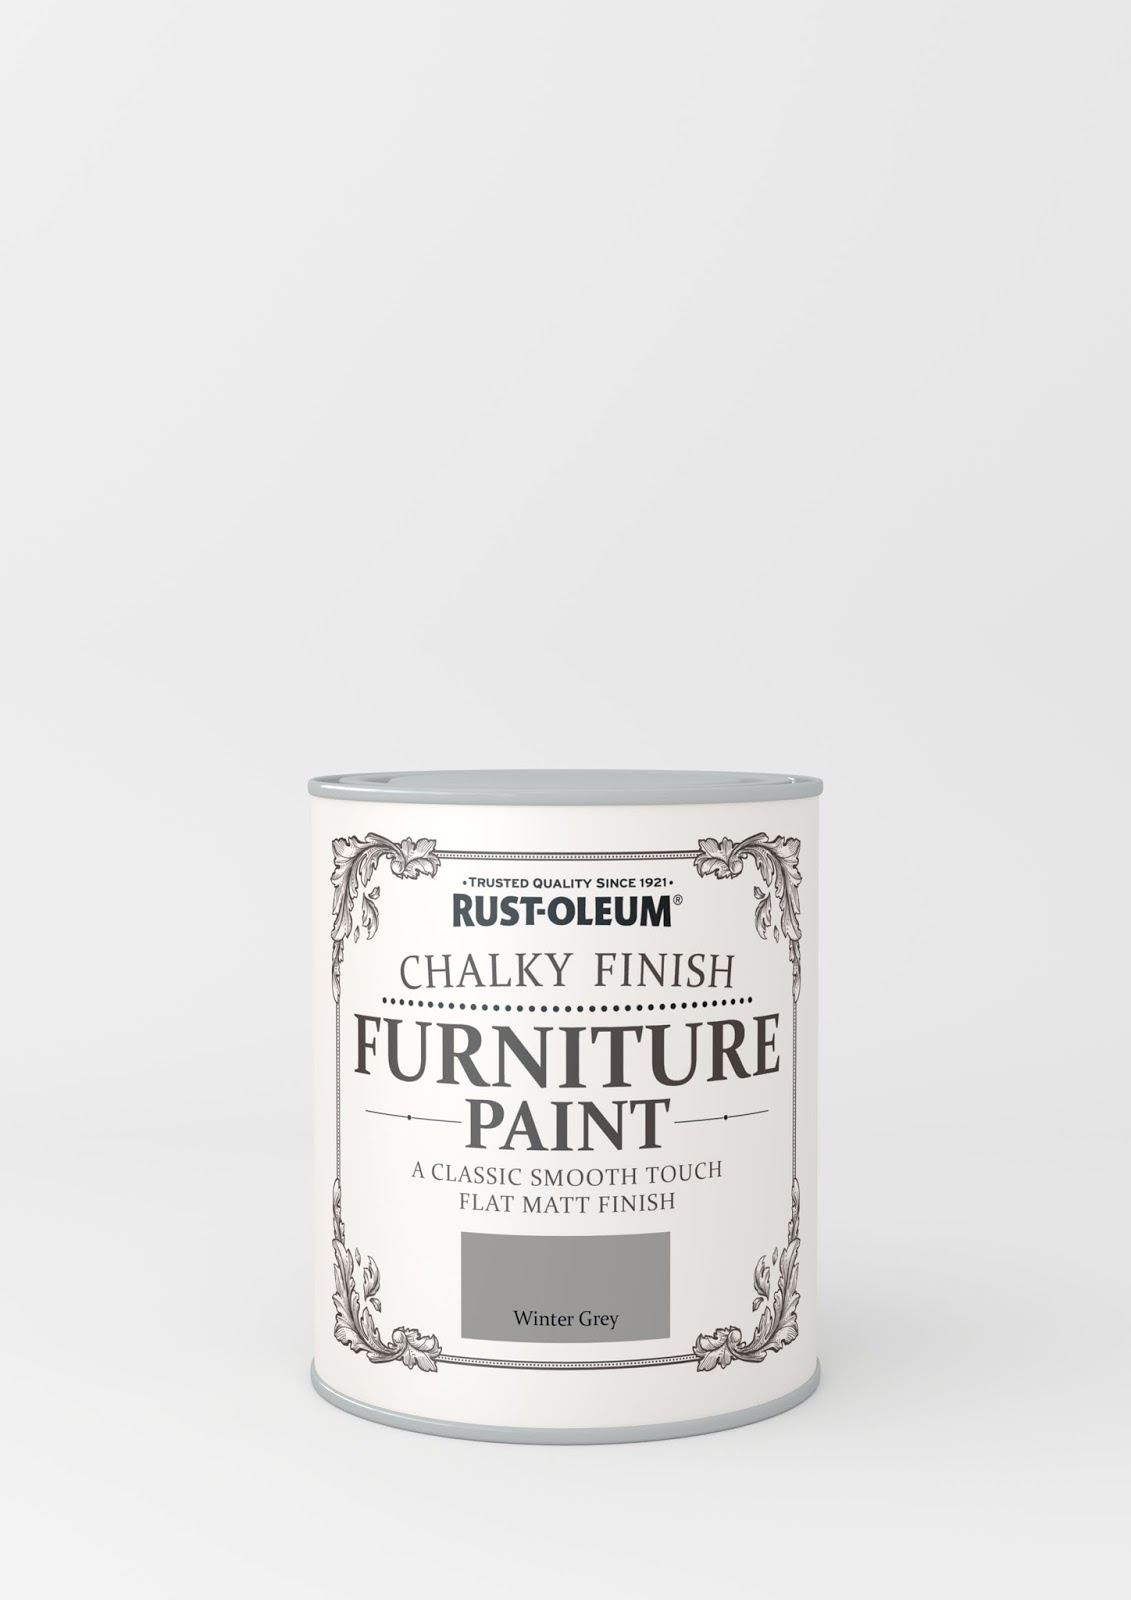 Rustoleum chalk furniture paint in Winter grey